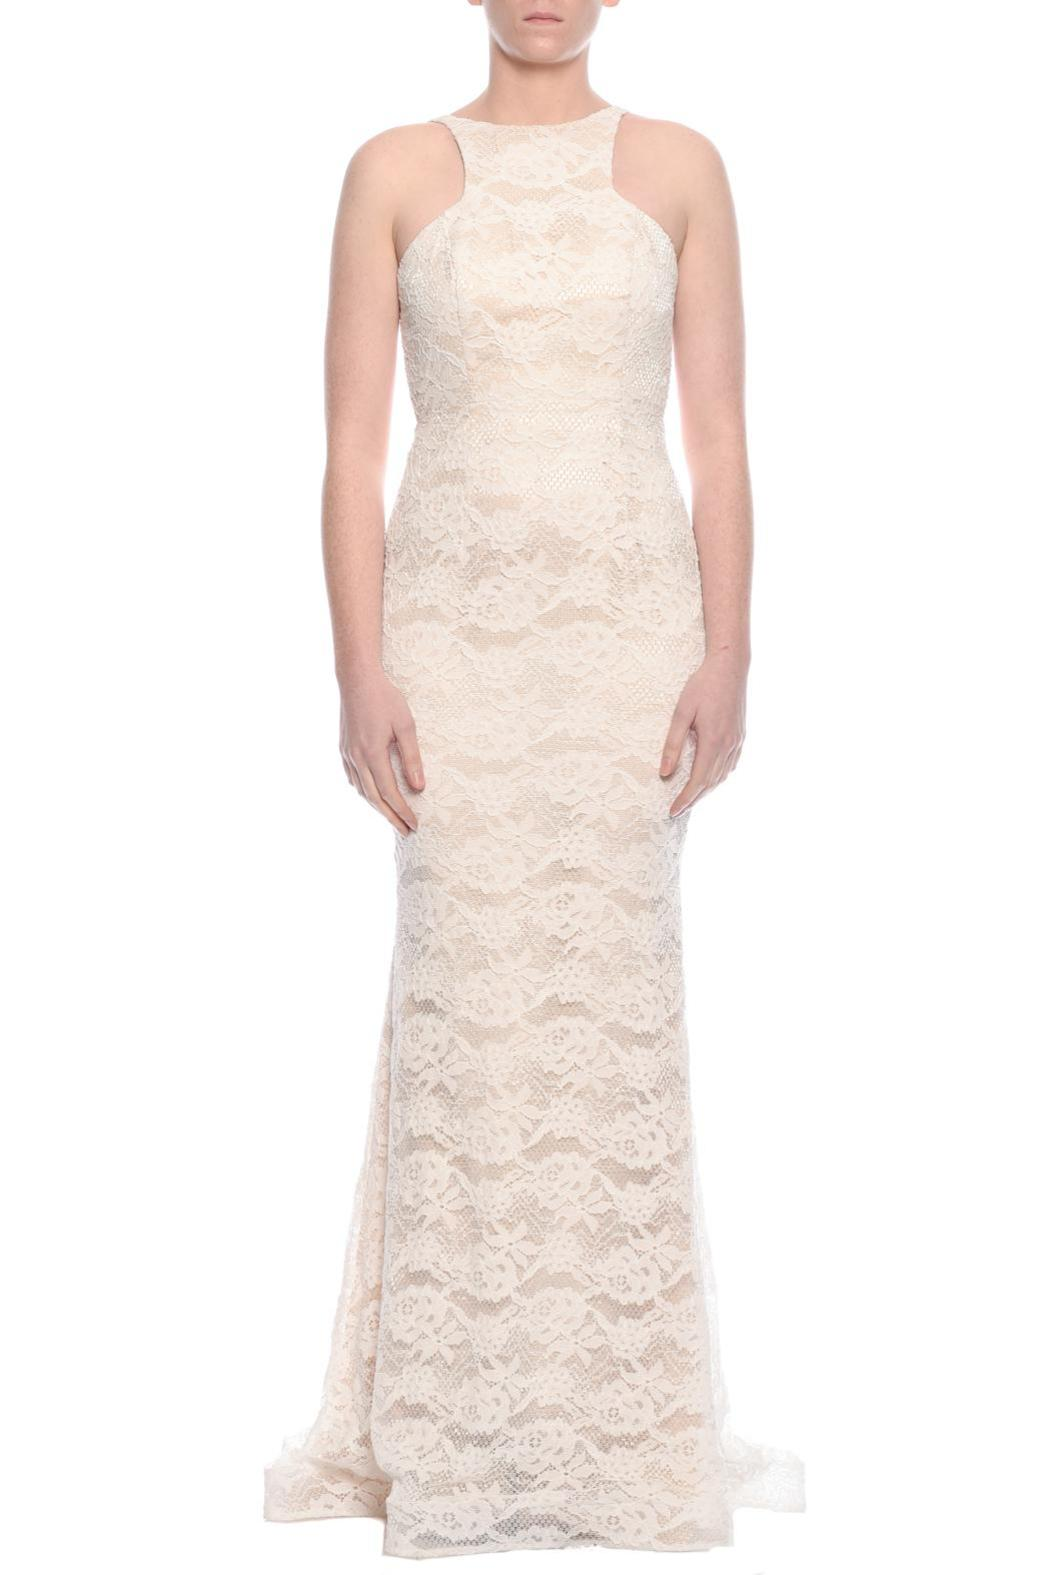 6503a82cef5 Jadore Lace Empress Dress from Sydney by Windsor and Lux — Shoptiques